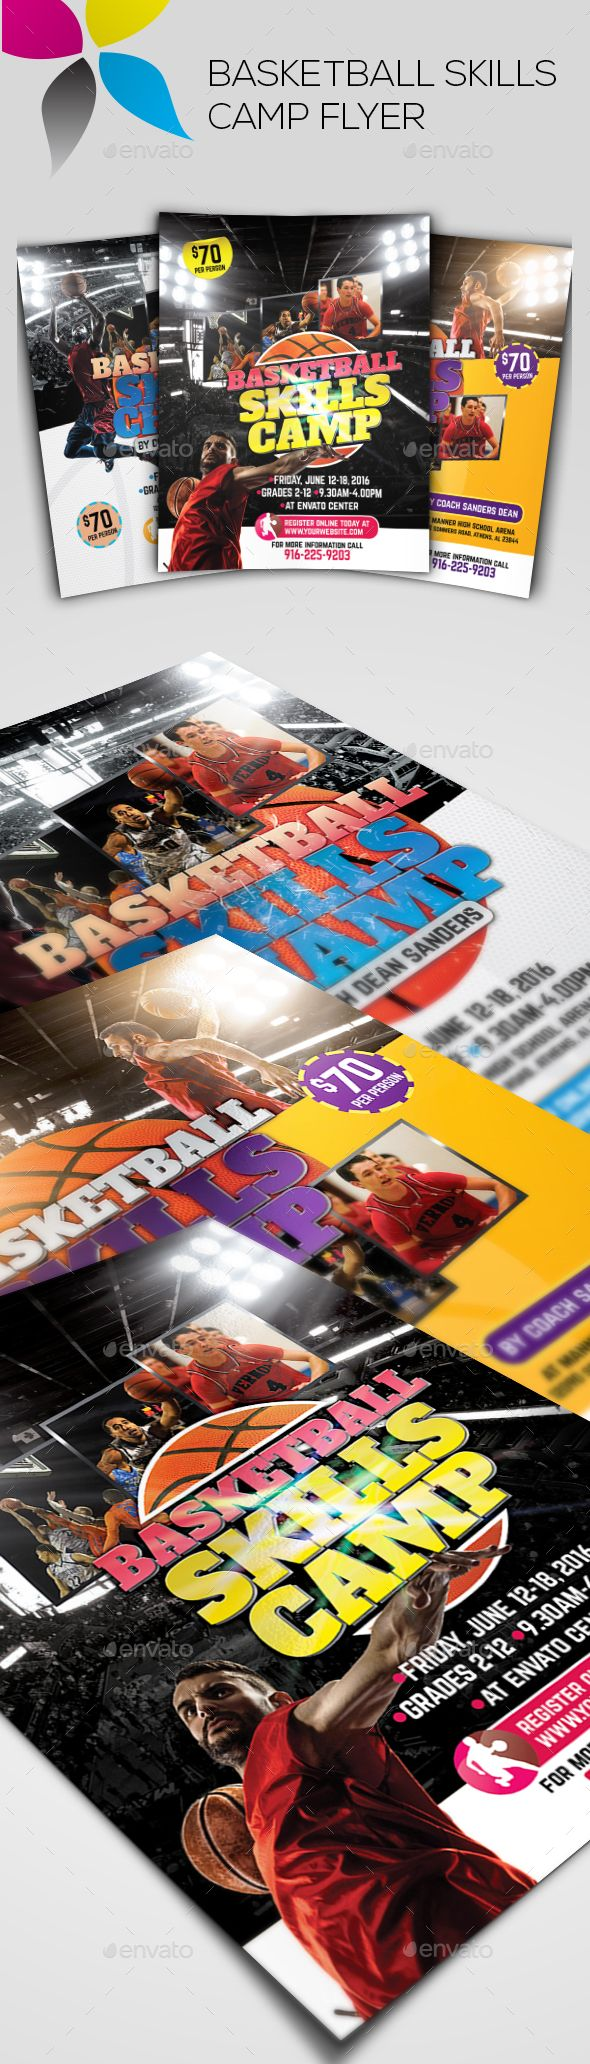 Basketball Skills Camp Flyer  Basketball Skills Flyer Template